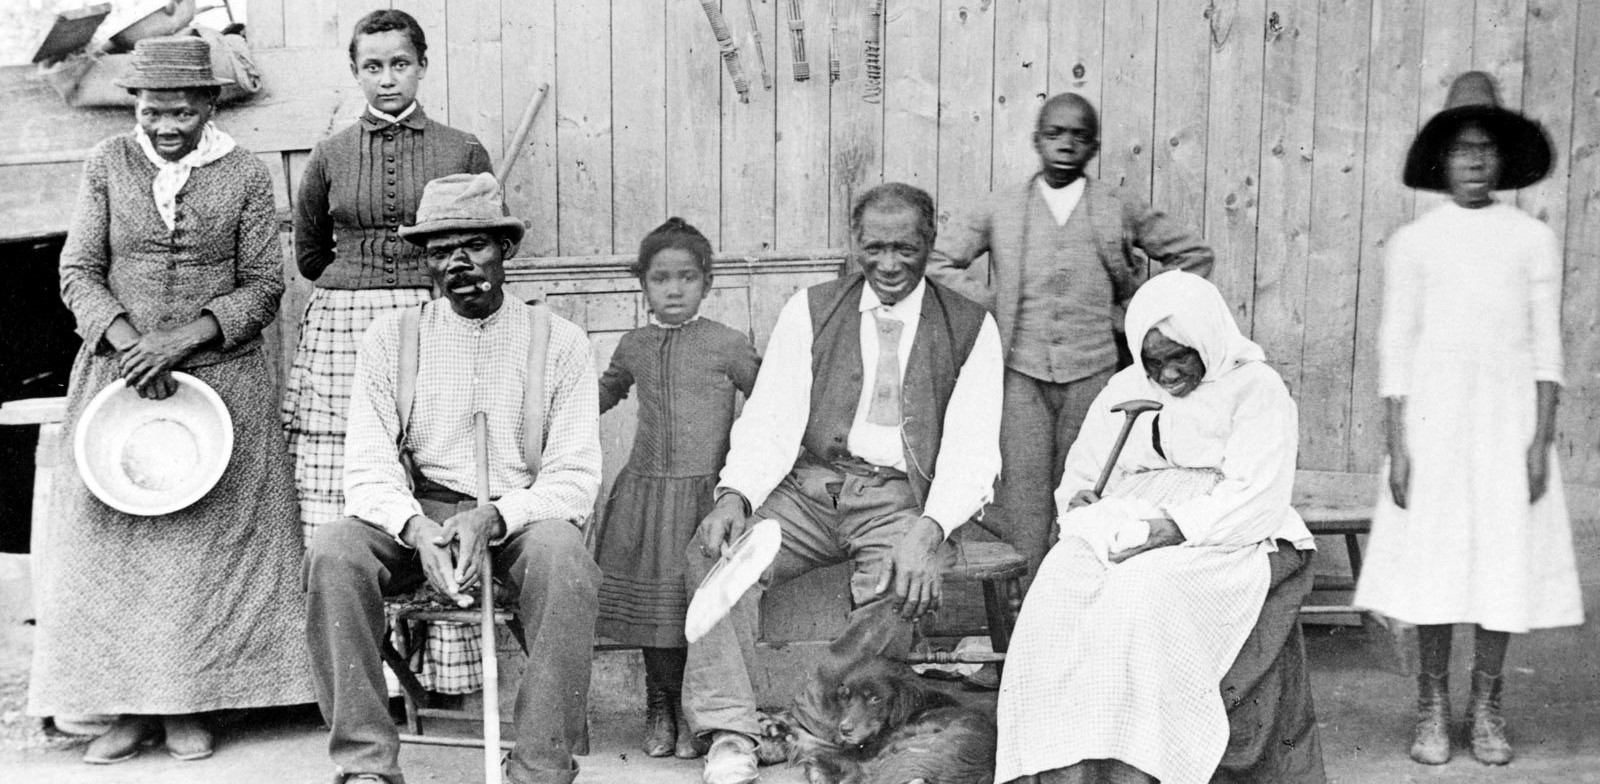 african americans limitations from 1865 1900s essay To what extent were the goals of reconstruction (1865-1877) regarding african americans achieved by 1900 explain the social, economic, and foreign policy goals of new right conservatives from the 1960's to the 1980's and assess the degree to which the reagan administration succeeded in implementing these goals in the 1980's.